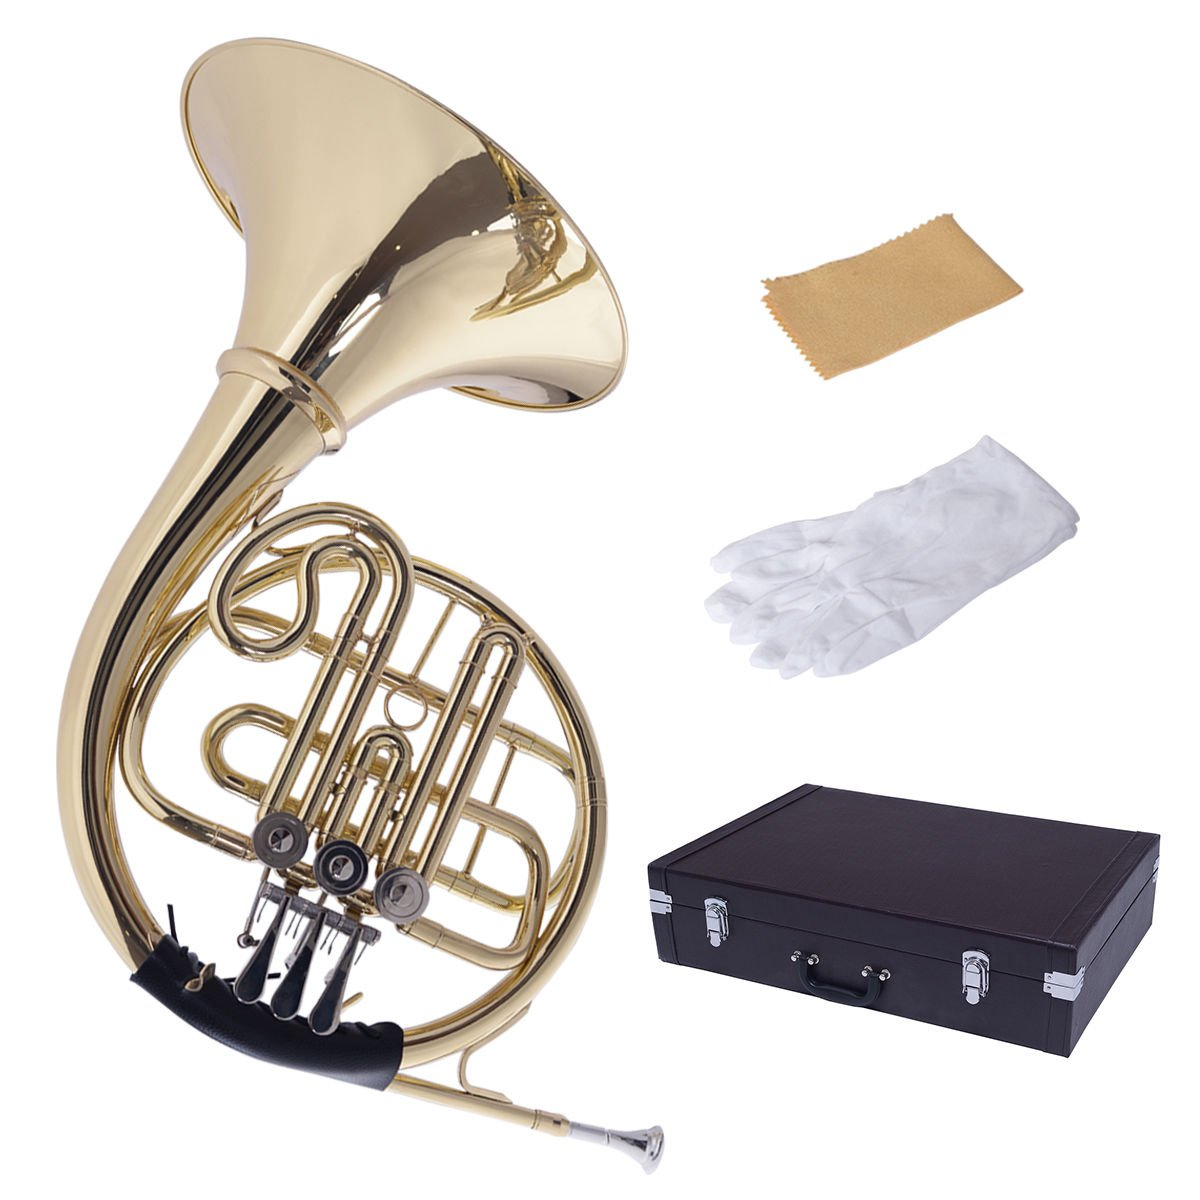 Costzon Brass French Horn, B/BB Flat 3 Key, Standard Student French Horn w/ Cupronickel Mouthpiece Case Gloves by Costzon